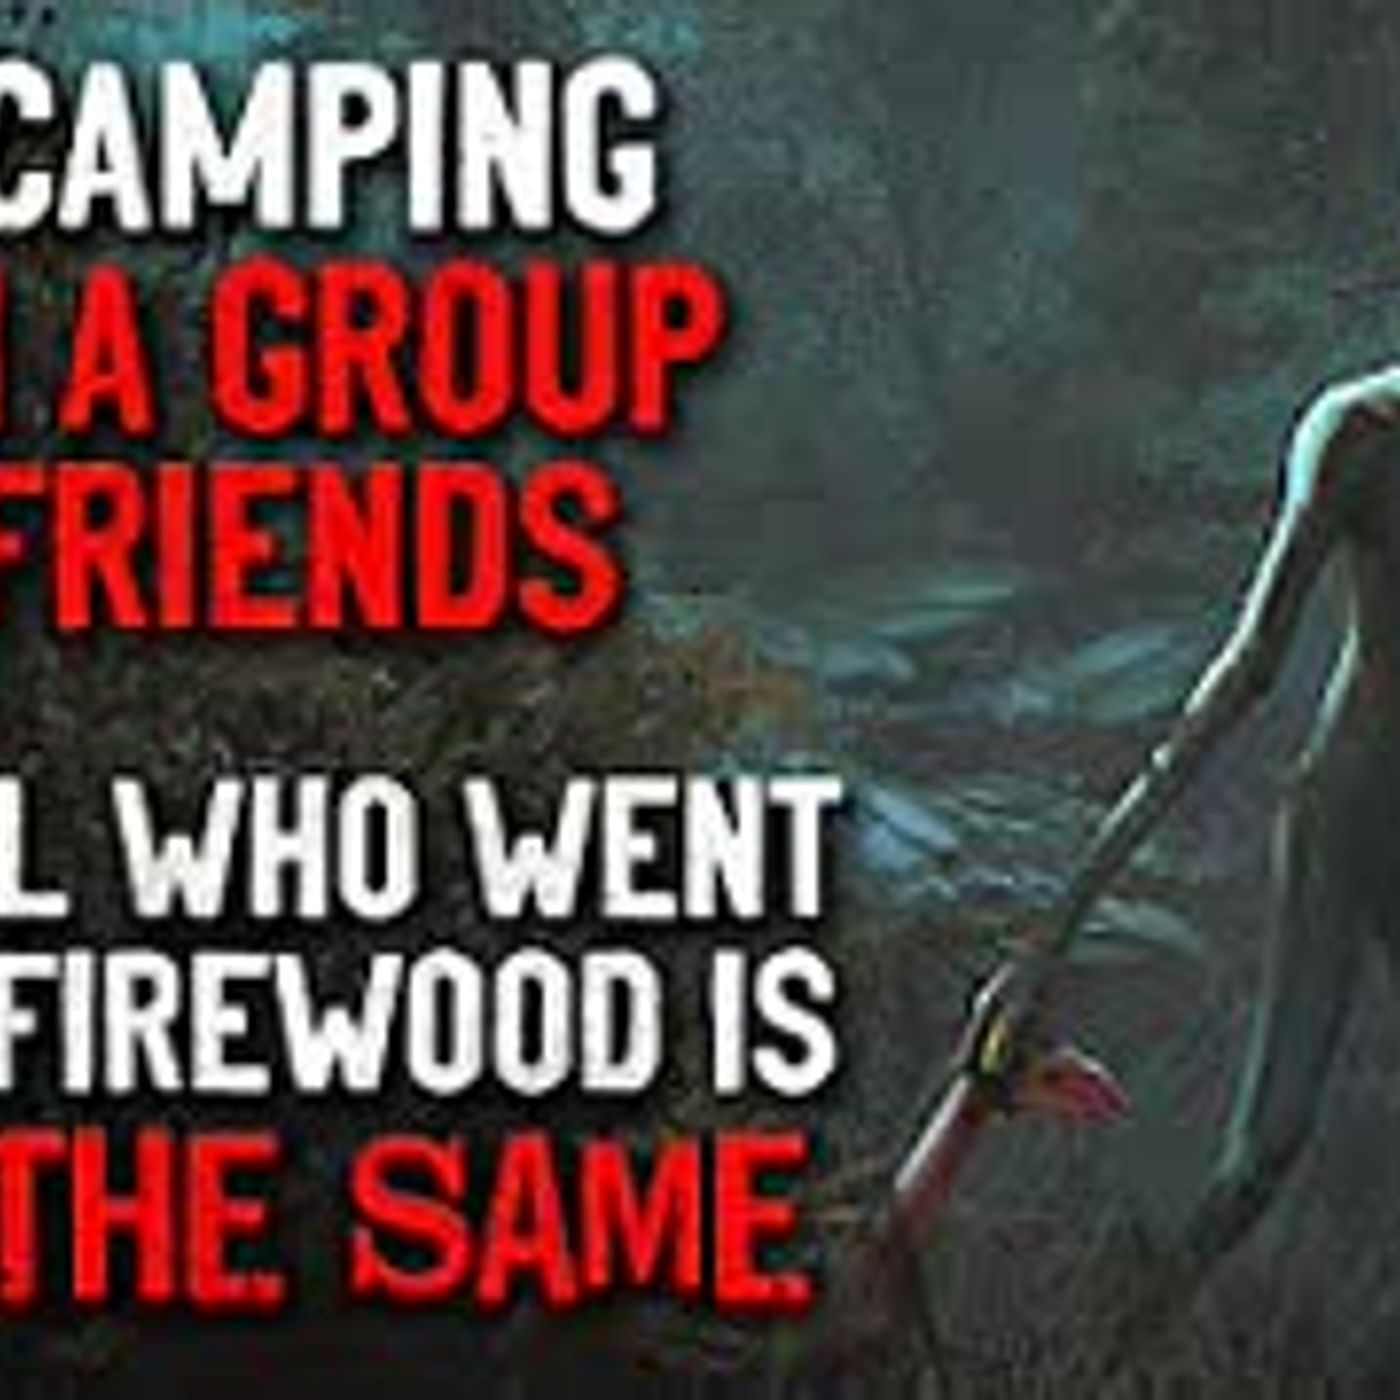 """I'm camping with a group of friends.The girl who left is NOT the same who came back"" Creepypasta"